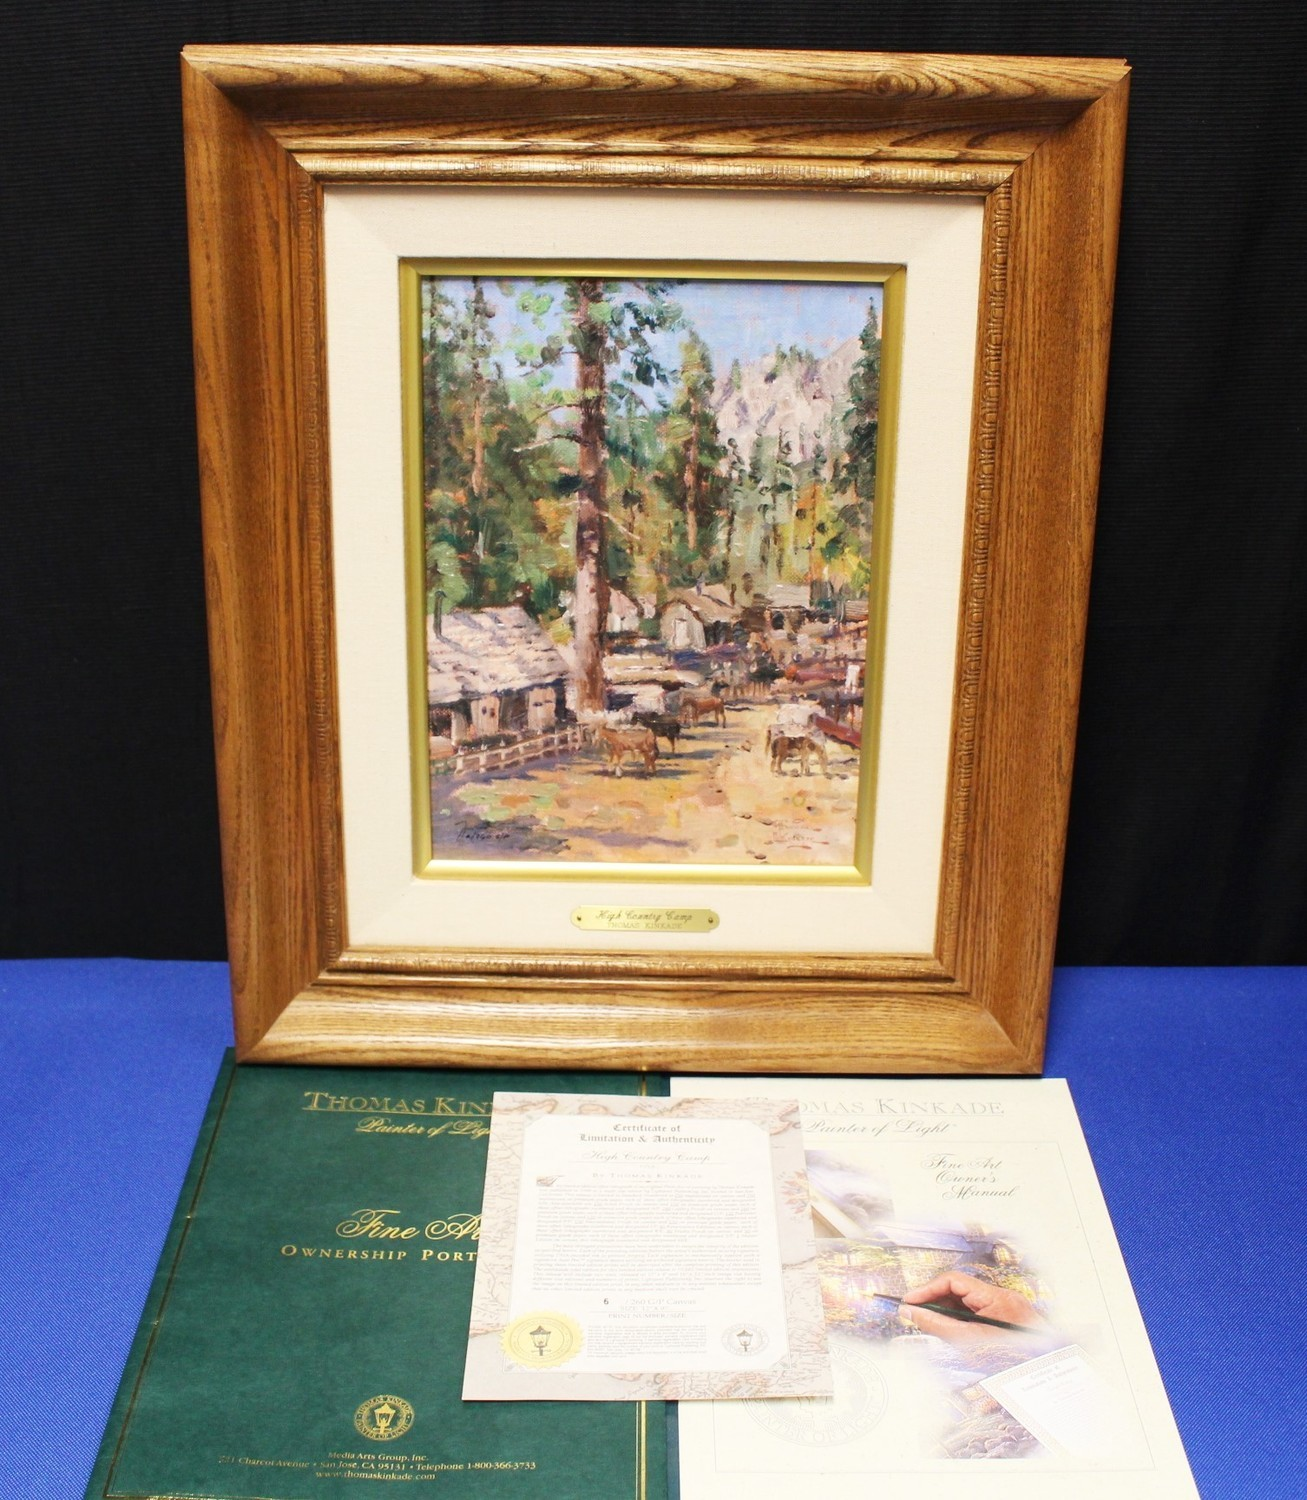 """Thomas Kinkade """"High Country Camp"""" 12 x 9 Lithograph on Canvas G/P #6/260"""